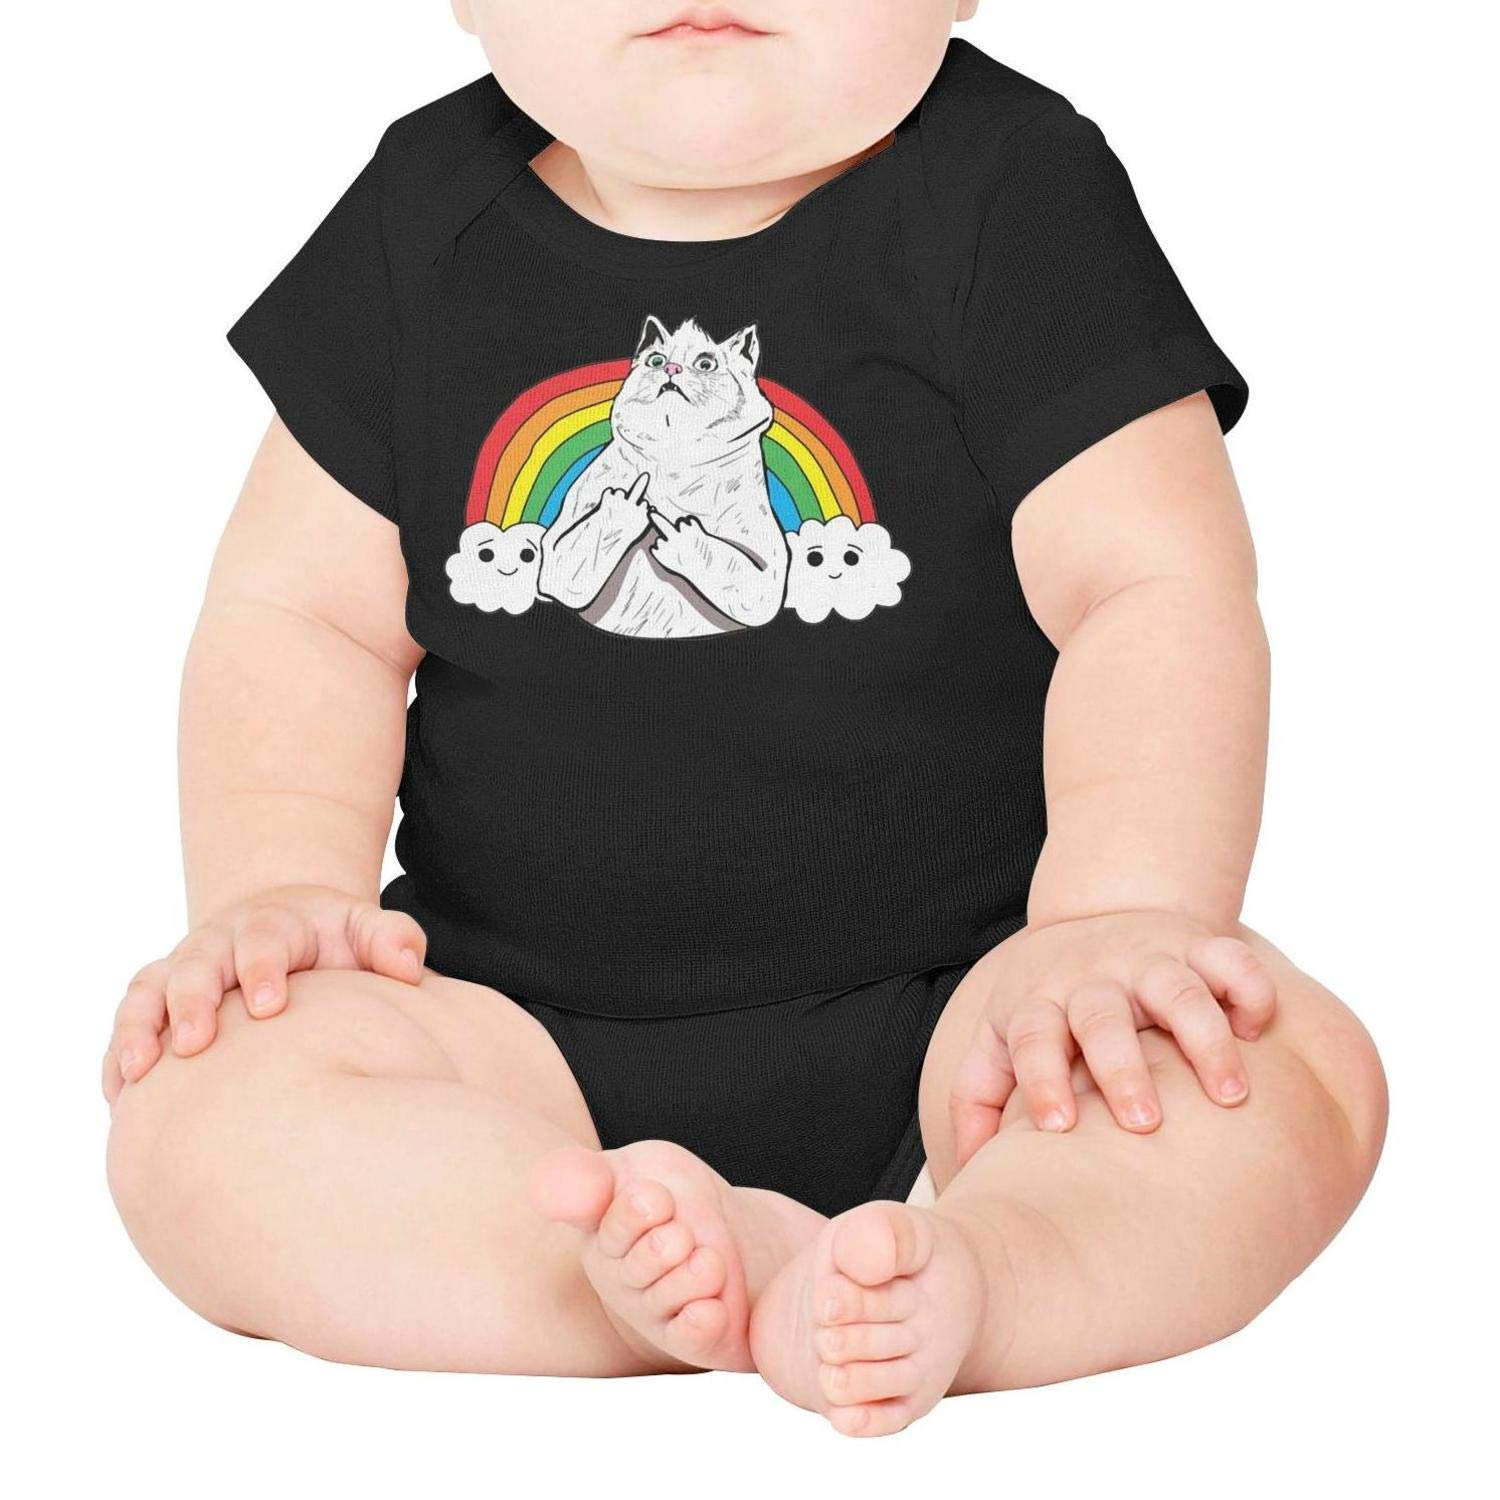 Rawr Pride Parade Gay /& Lesbian Rainbow Flag Baby Onesie Outfits Mesh One-Piece Cotton Short Sleeve